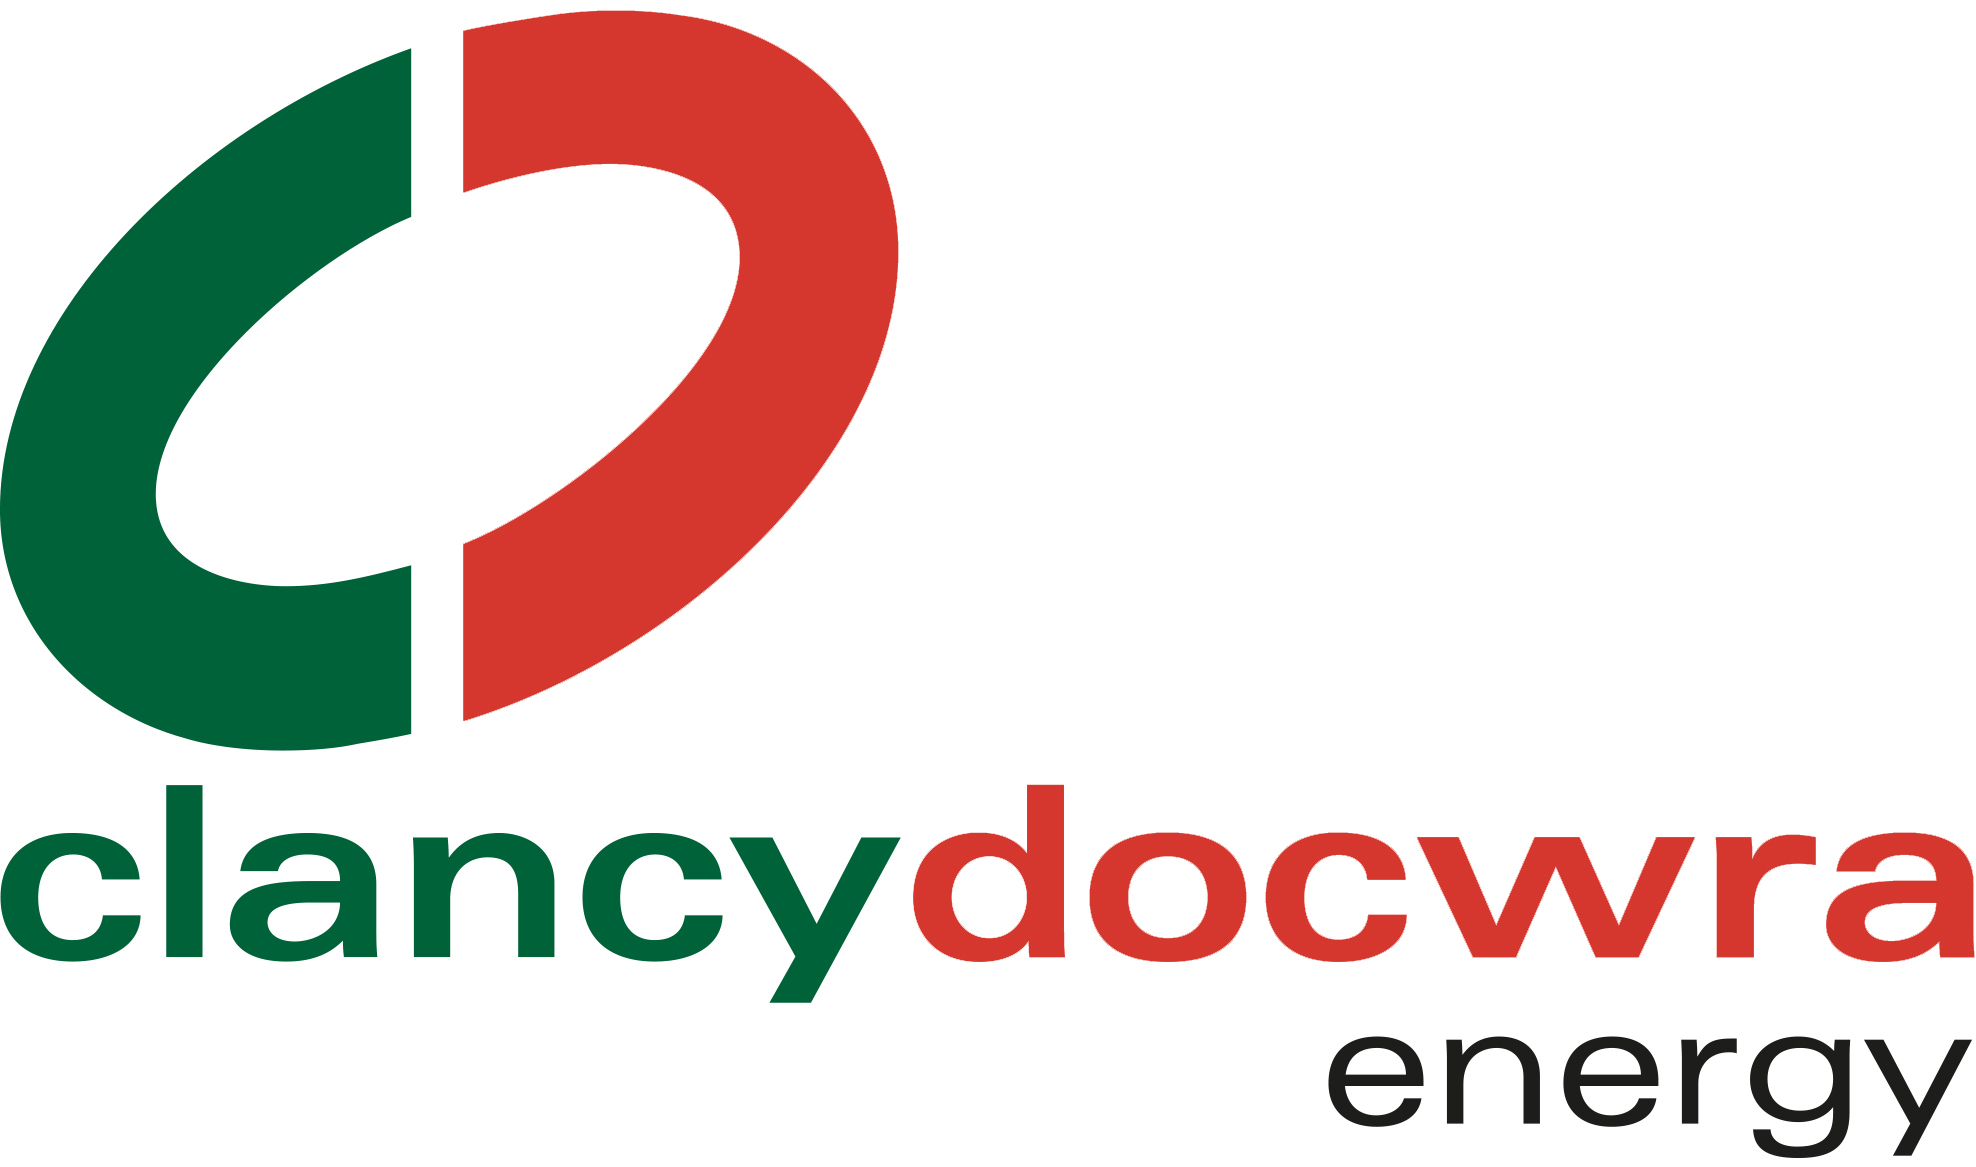 Energy - Clancy Docwra